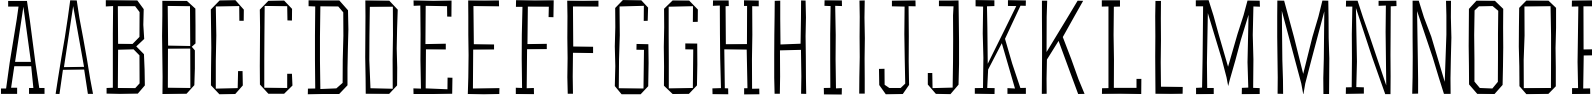 YWFT League Thin Font